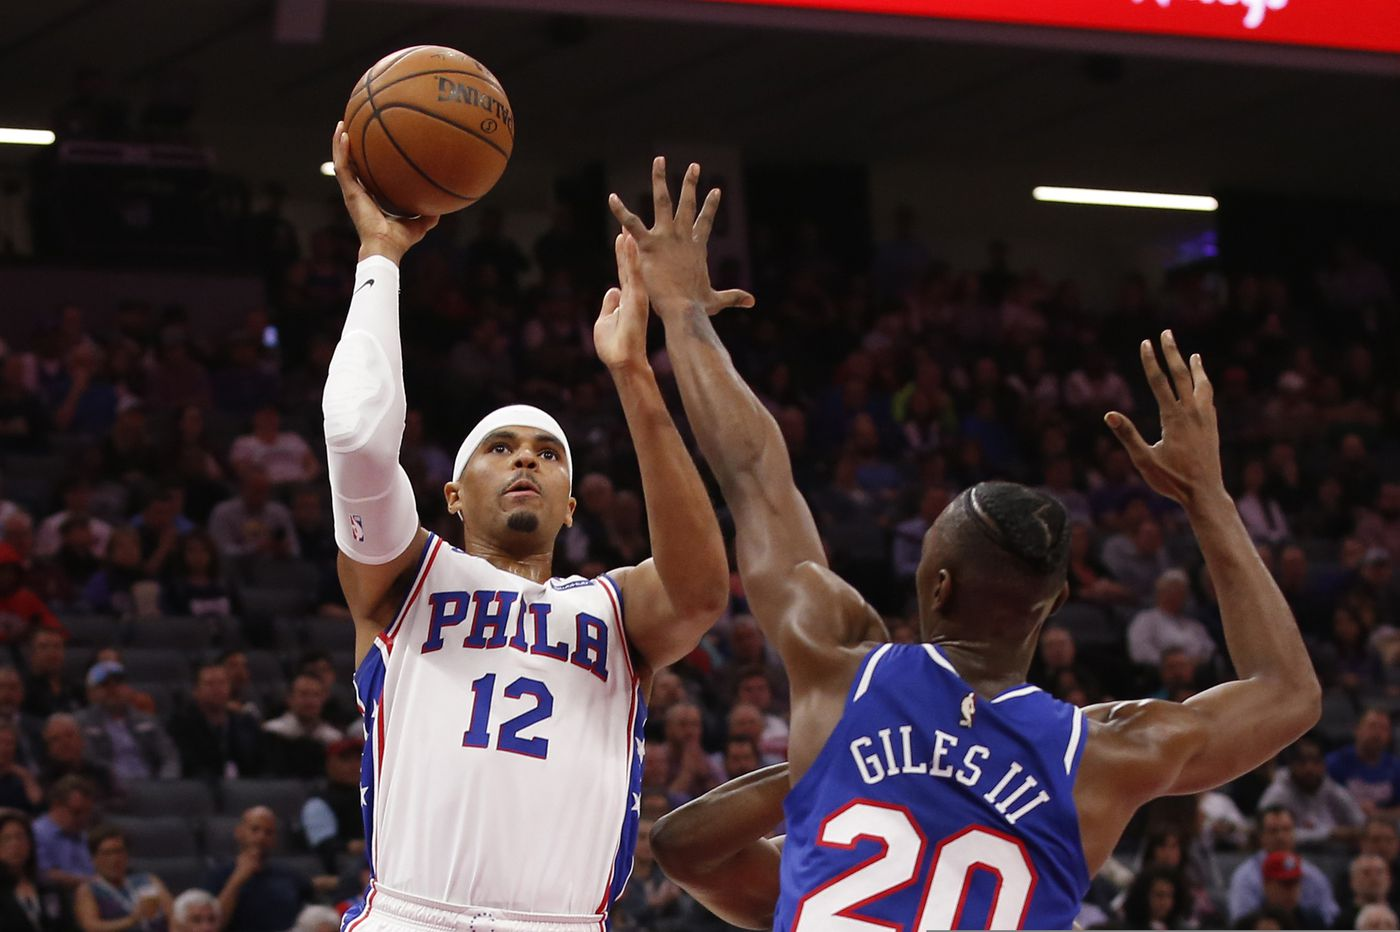 Undermanned Sixers top Sacramento Kings, 125-108, to snap nine-game road skid